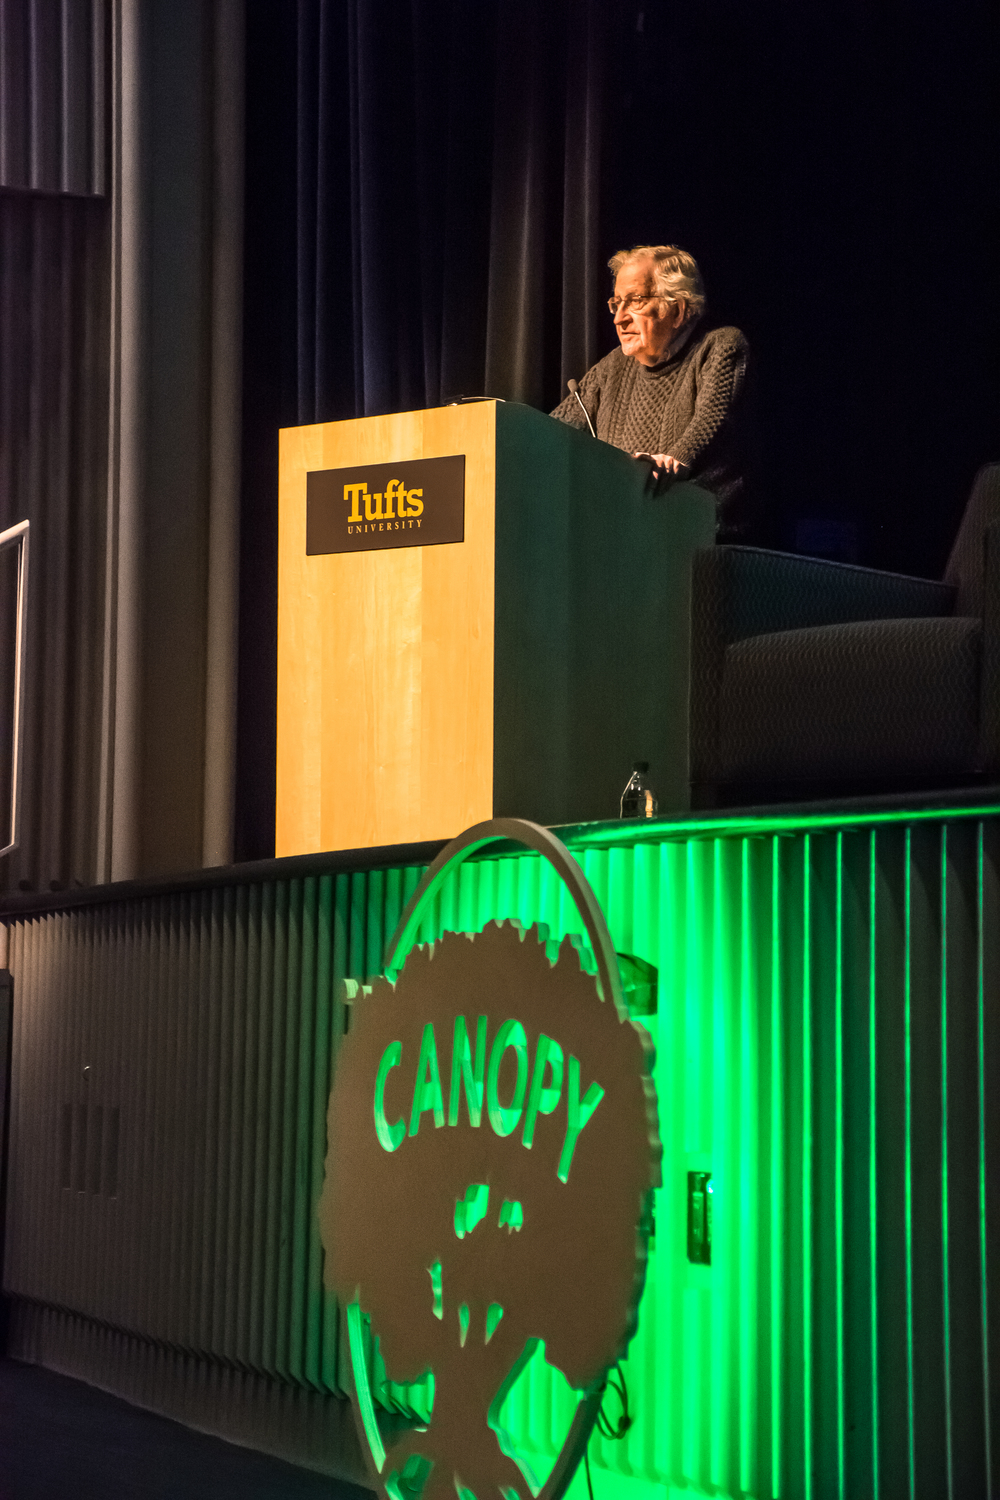 Noam Chomsky addressed the crowd at the very first Canopy Social Impact Series event.